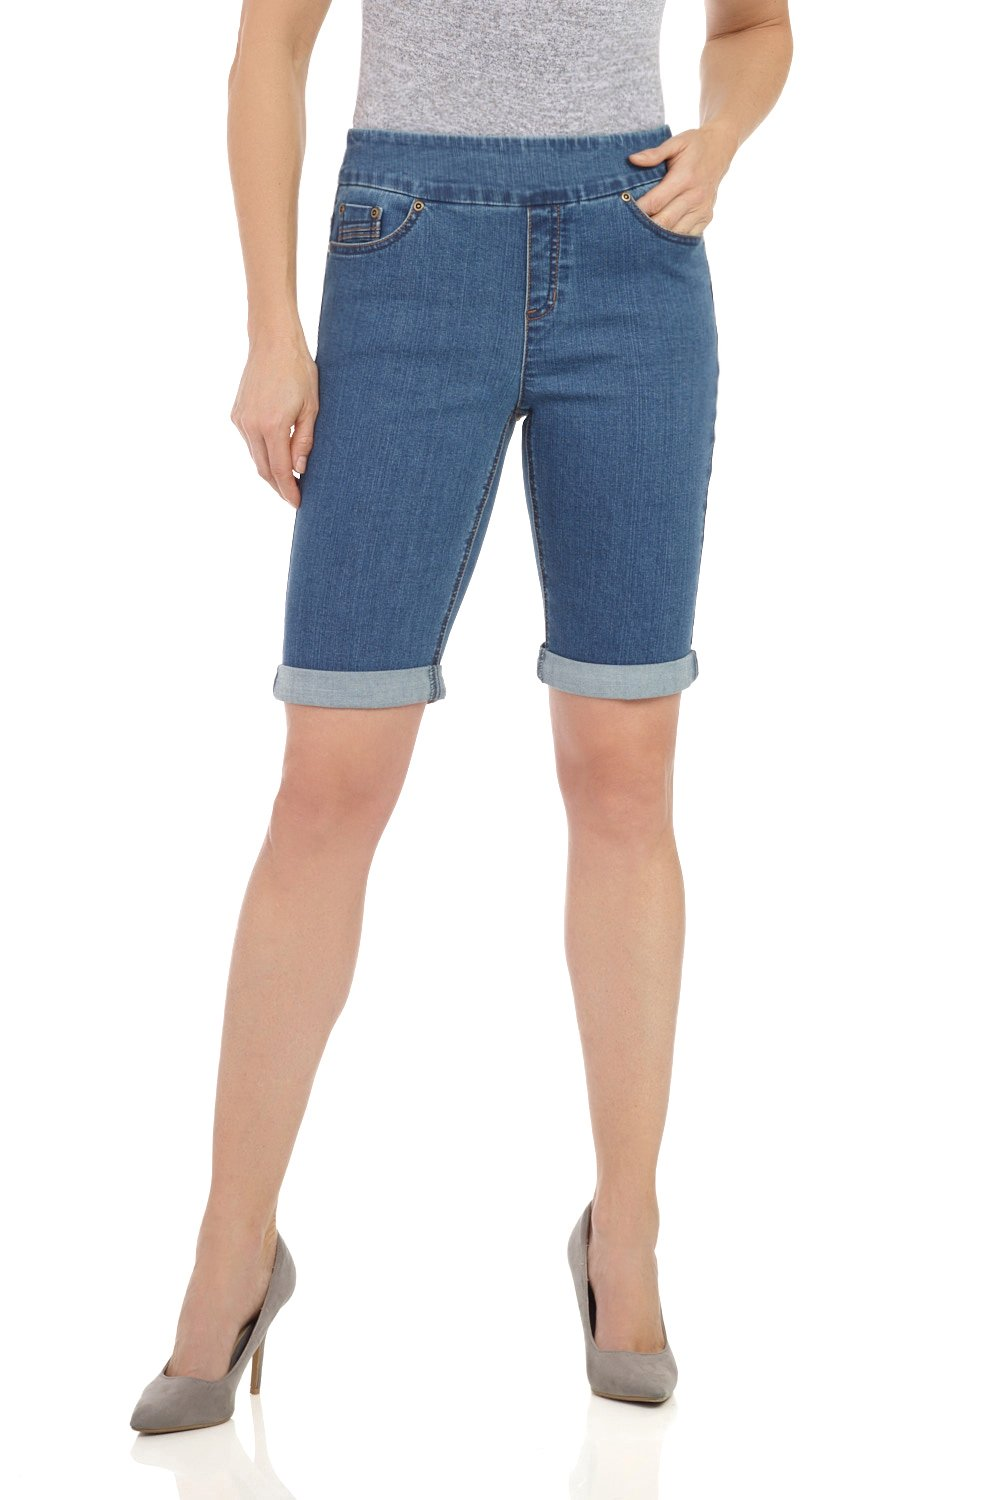 Rekucci Women's Ease in to Comfort Fit Stretch Jean Bermuda Short W/Cuff (6,Md. Stone Wash)